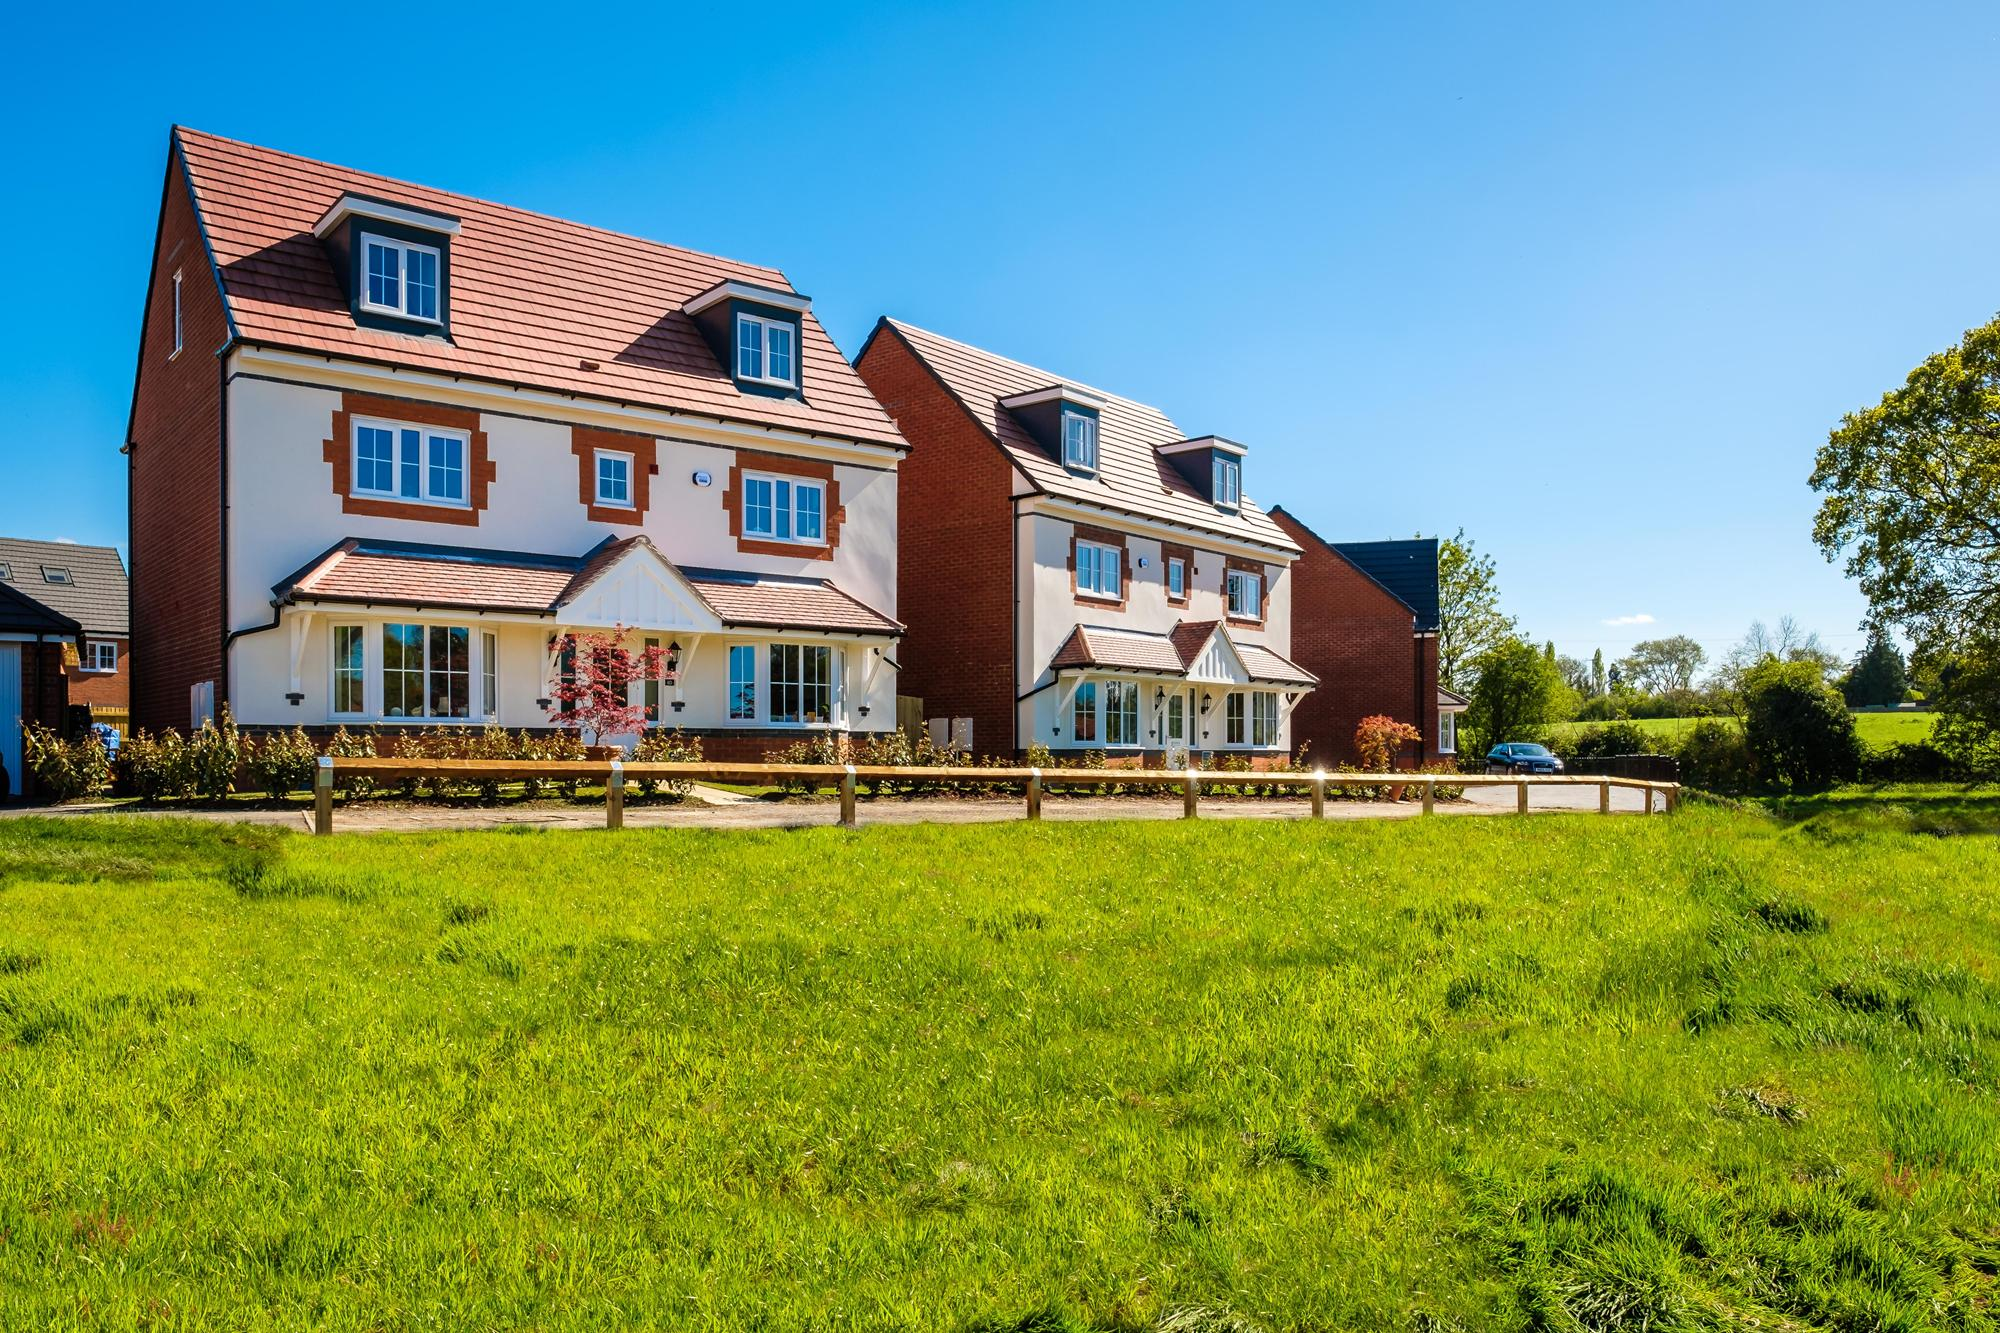 New Build Homes in Bowbrook